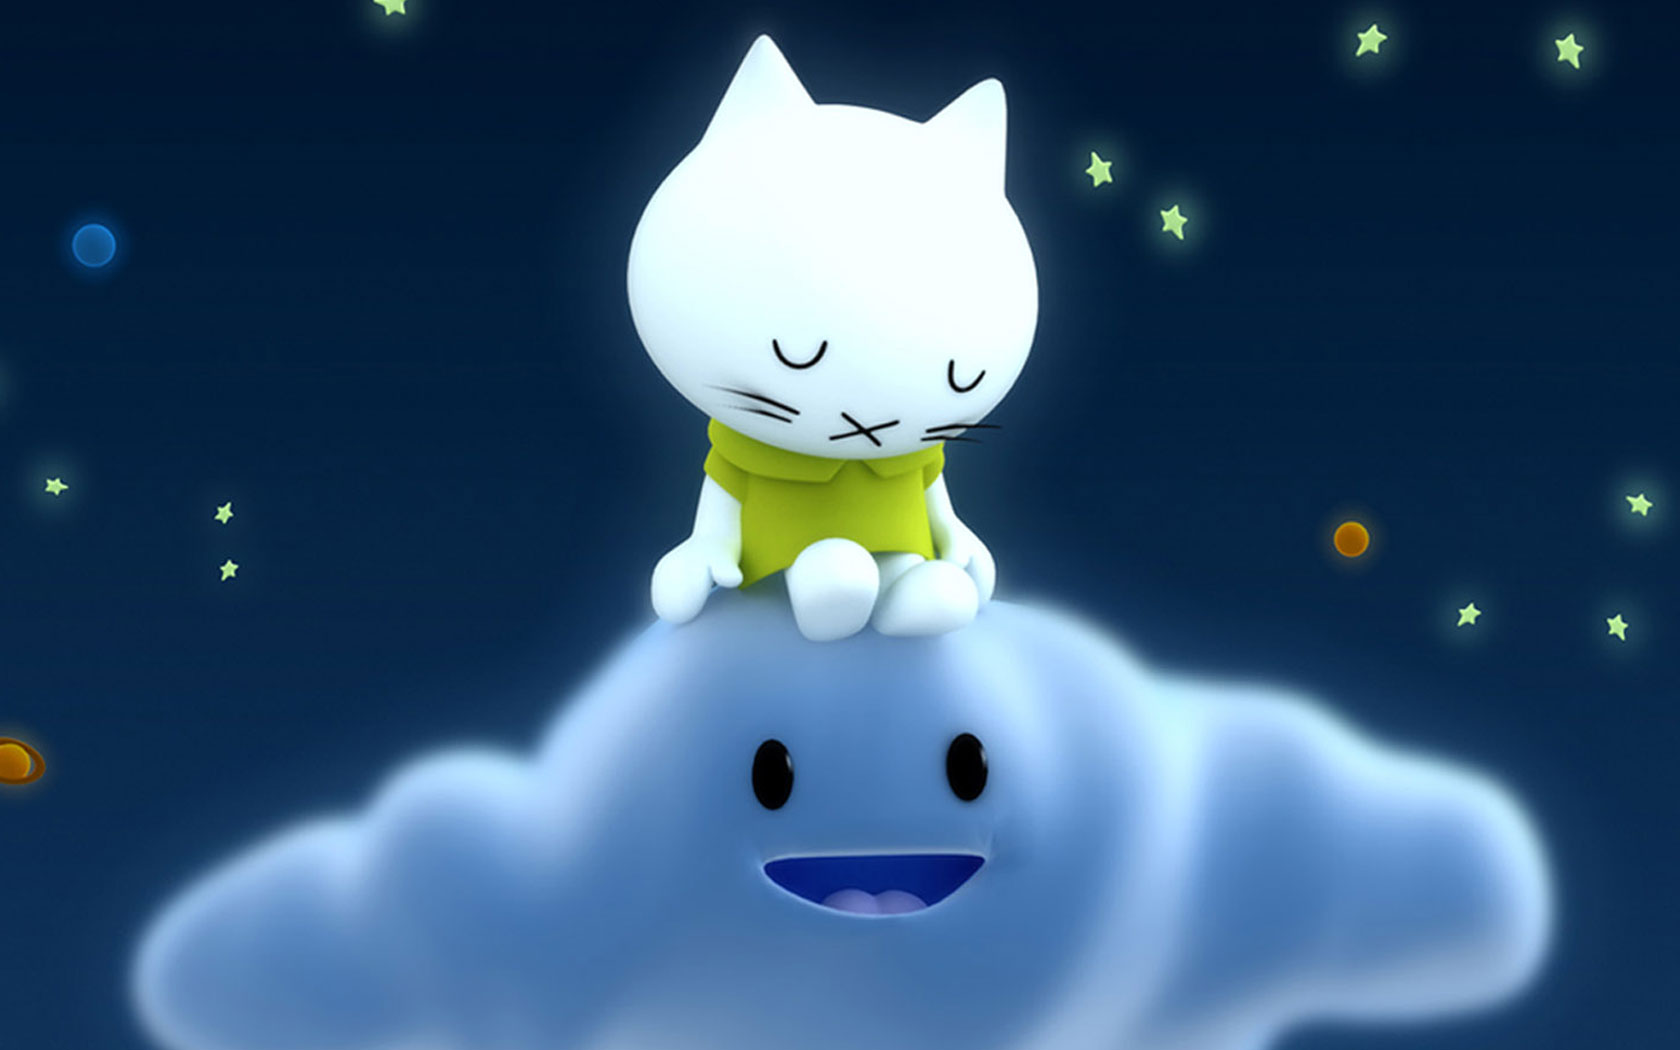 Cute Animated Wallpaper for Desktop - WallpaperSafari